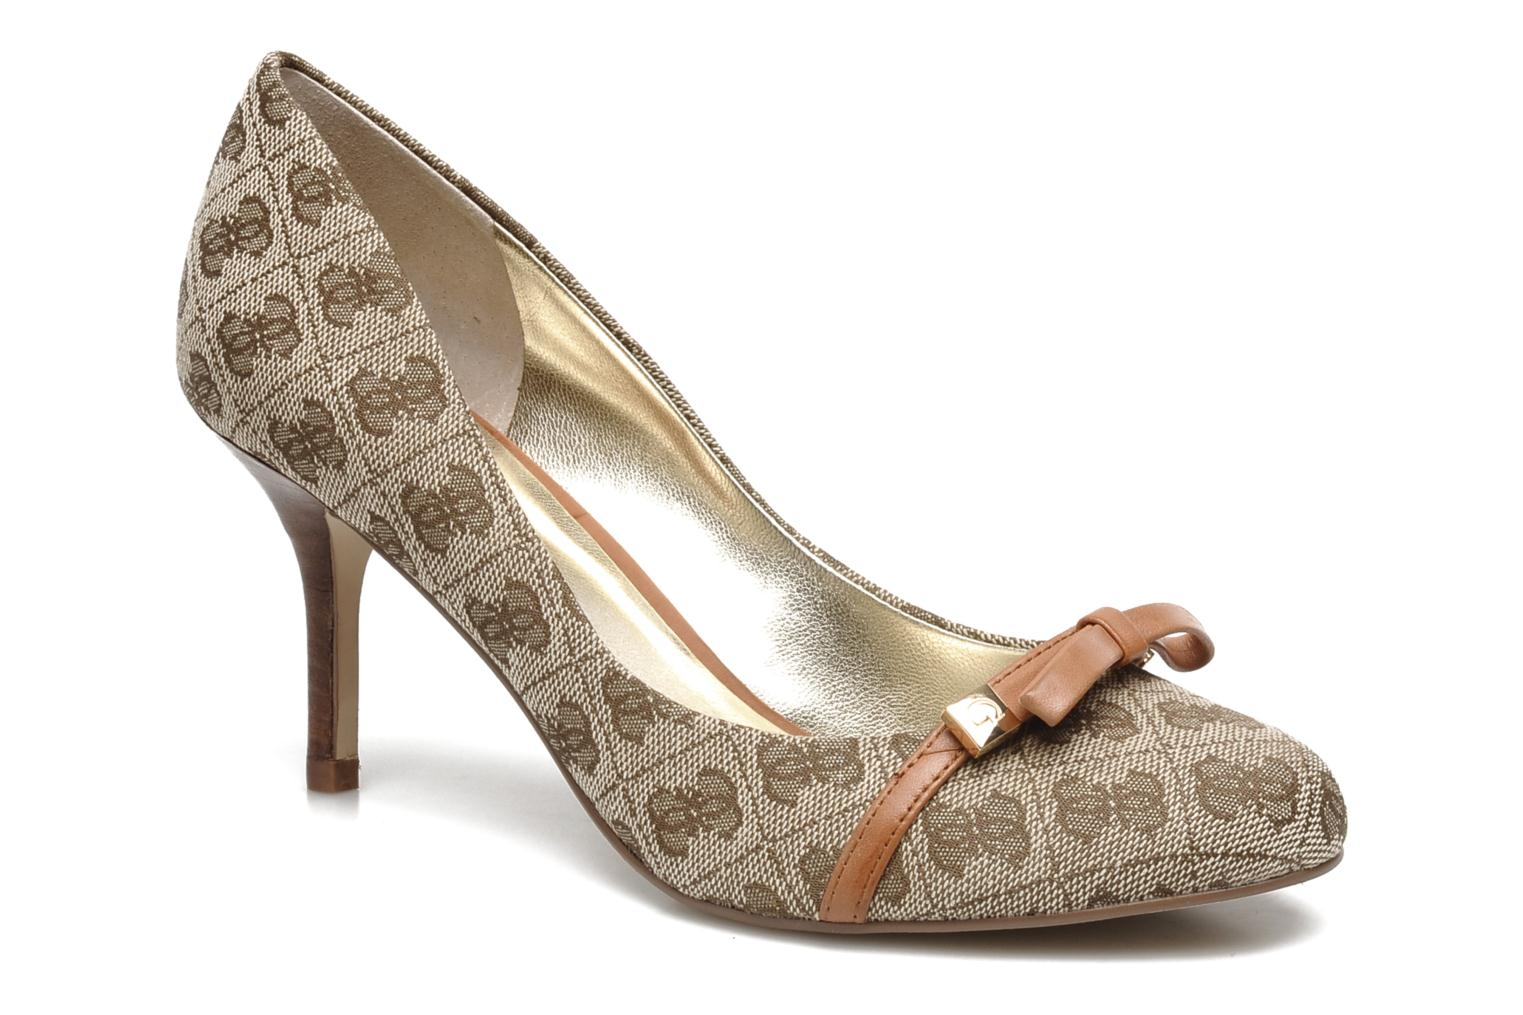 Guess Sepal 2 High Heels Color: Brown